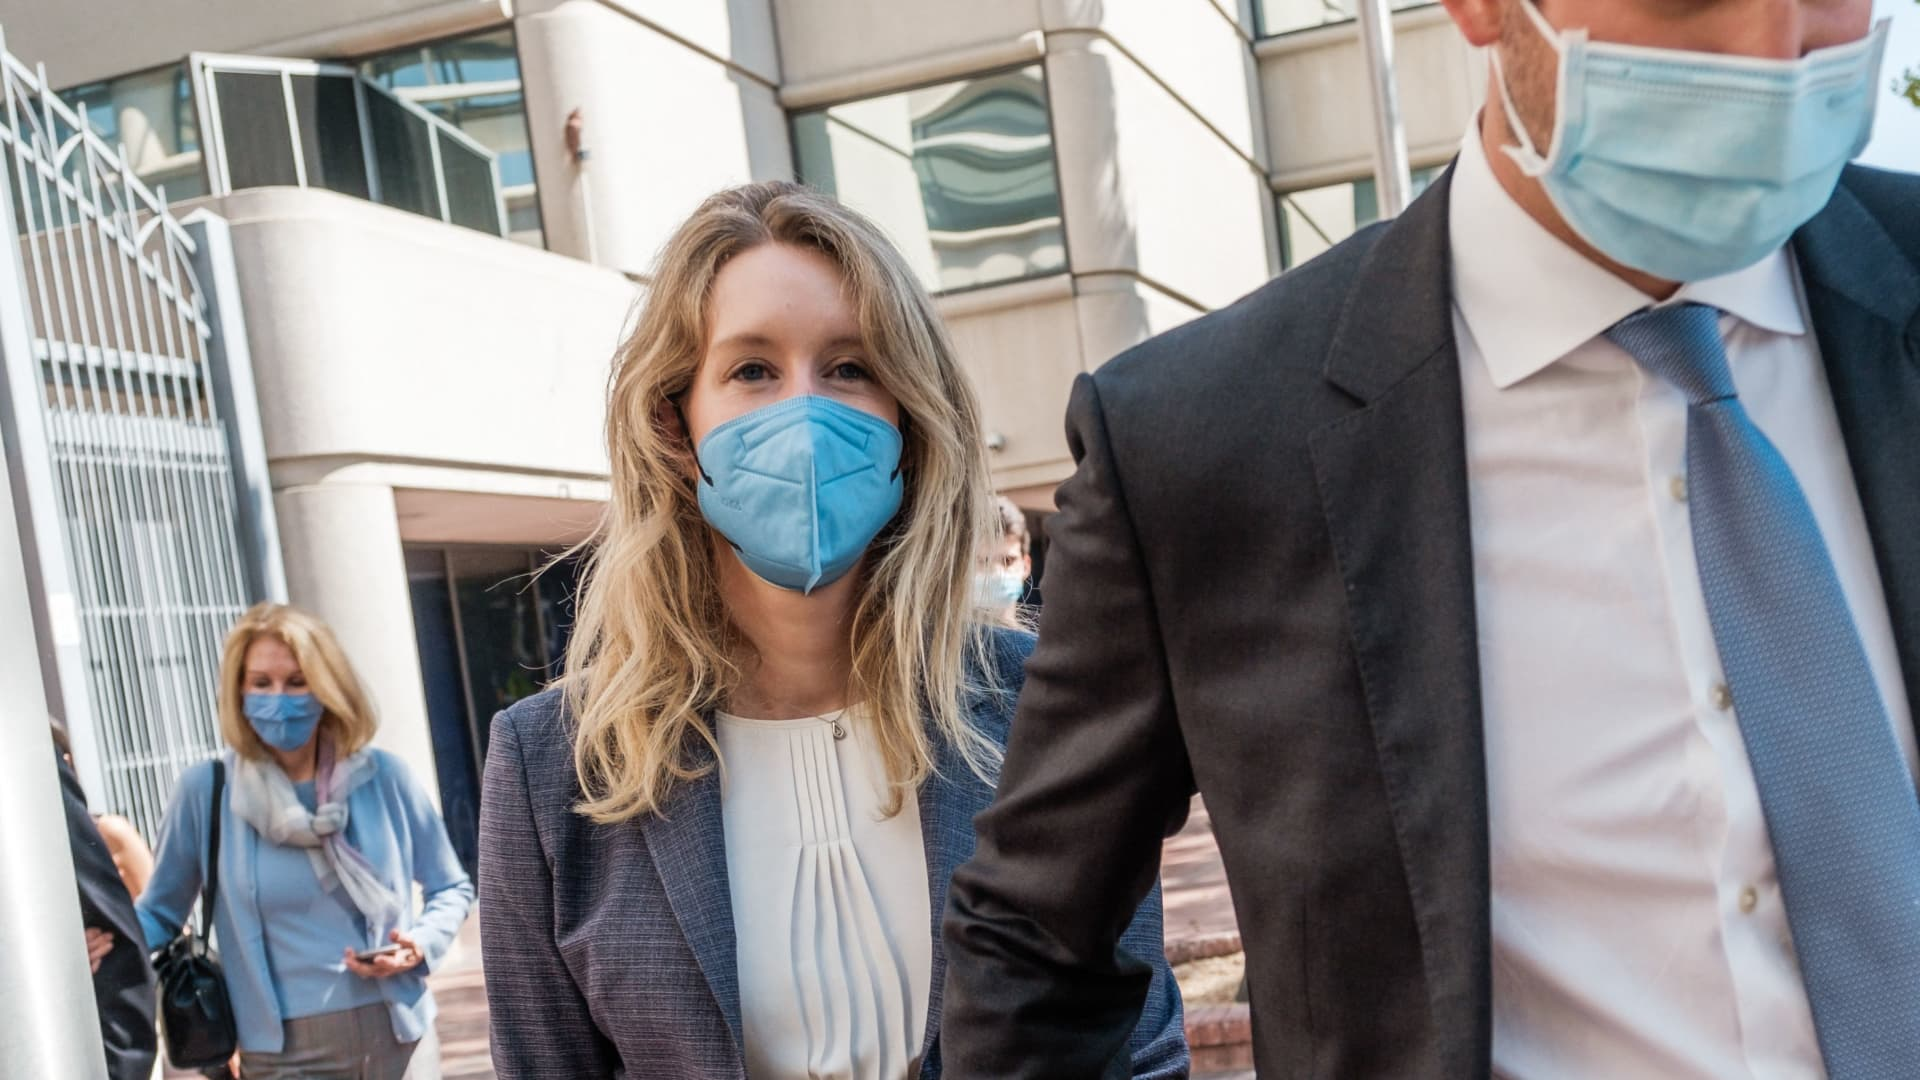 Elizabeth Holmes (L), founder and former CEO of Theranos, leaves the courthouse with her husband Billy Evans after the first day of her fraud trial in San Jose on Sept. 8, 2021.